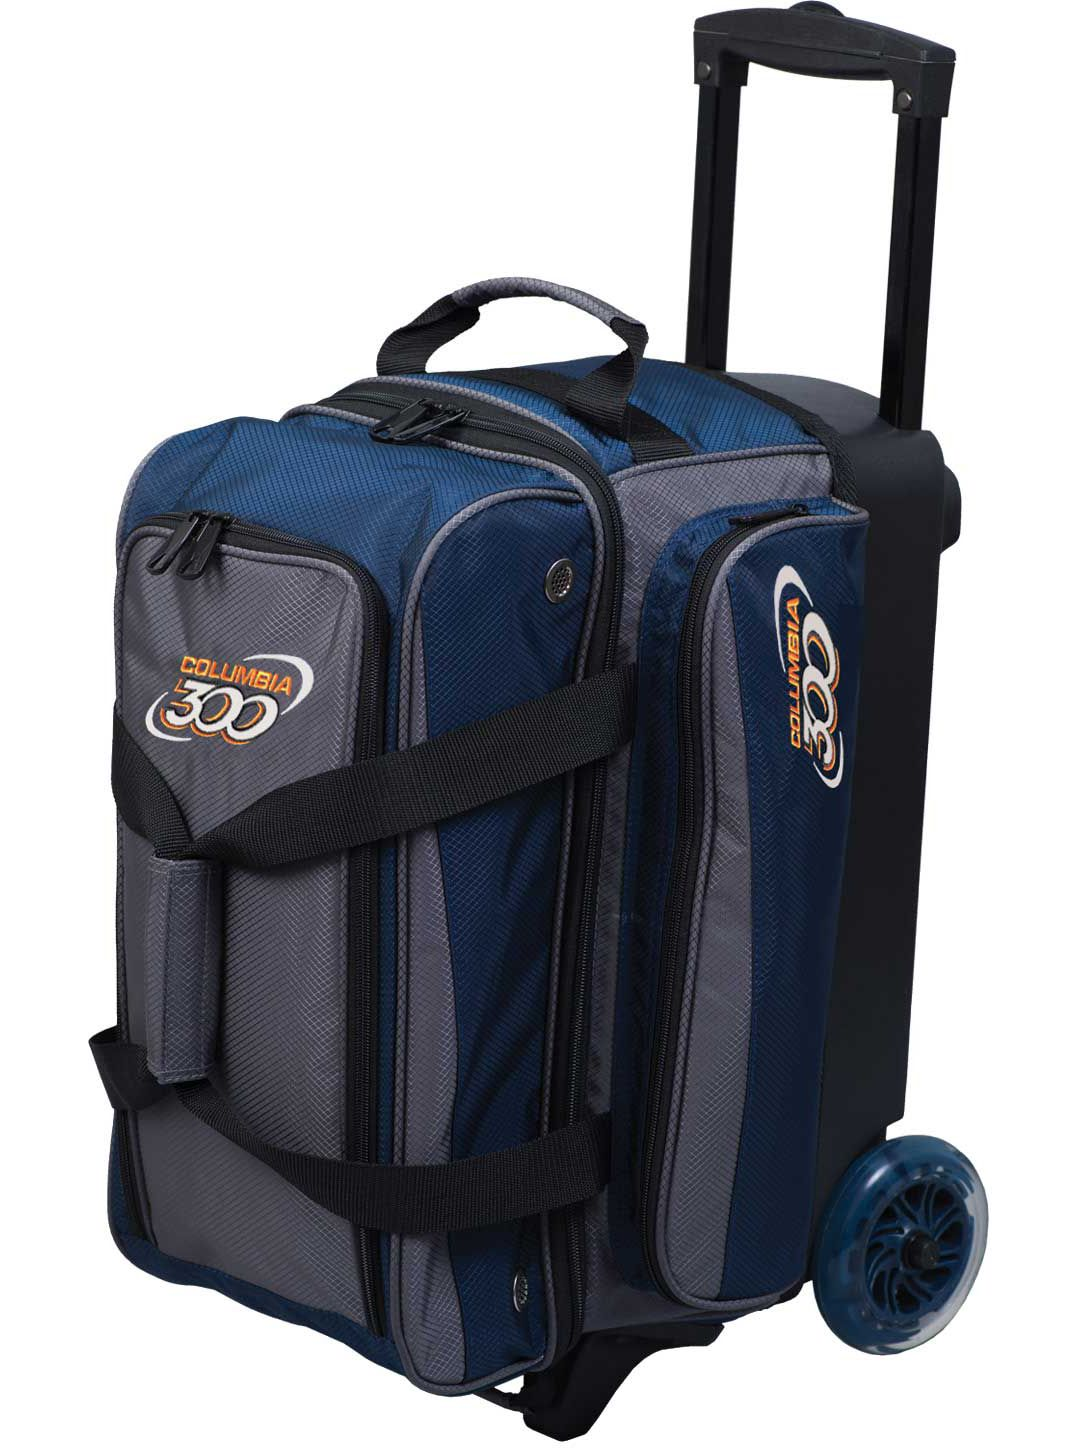 Columbia 300 Icon 2 Ball Roller Bowling Bag